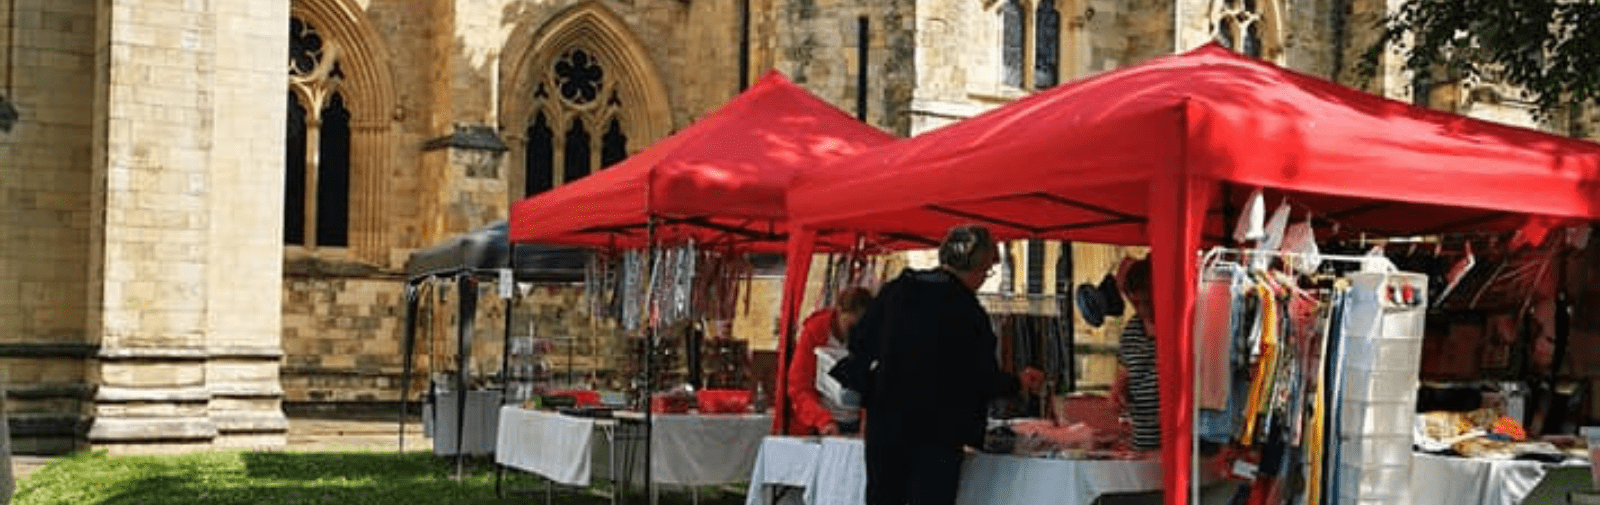 Person visiting stalls in Selby Abbey grounds